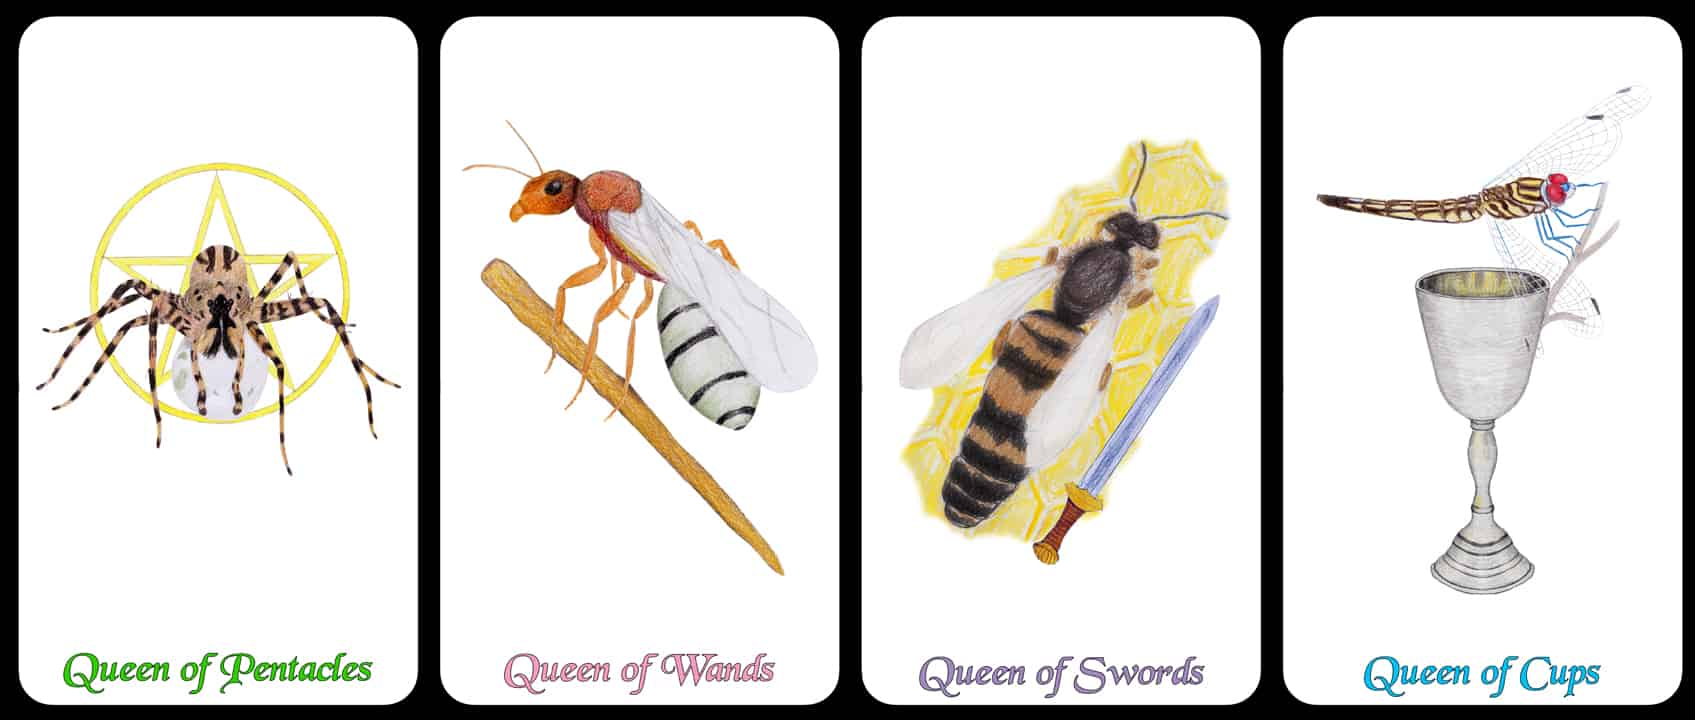 The Queens - The Arthropoda Tarot Deck by Linda Ursin